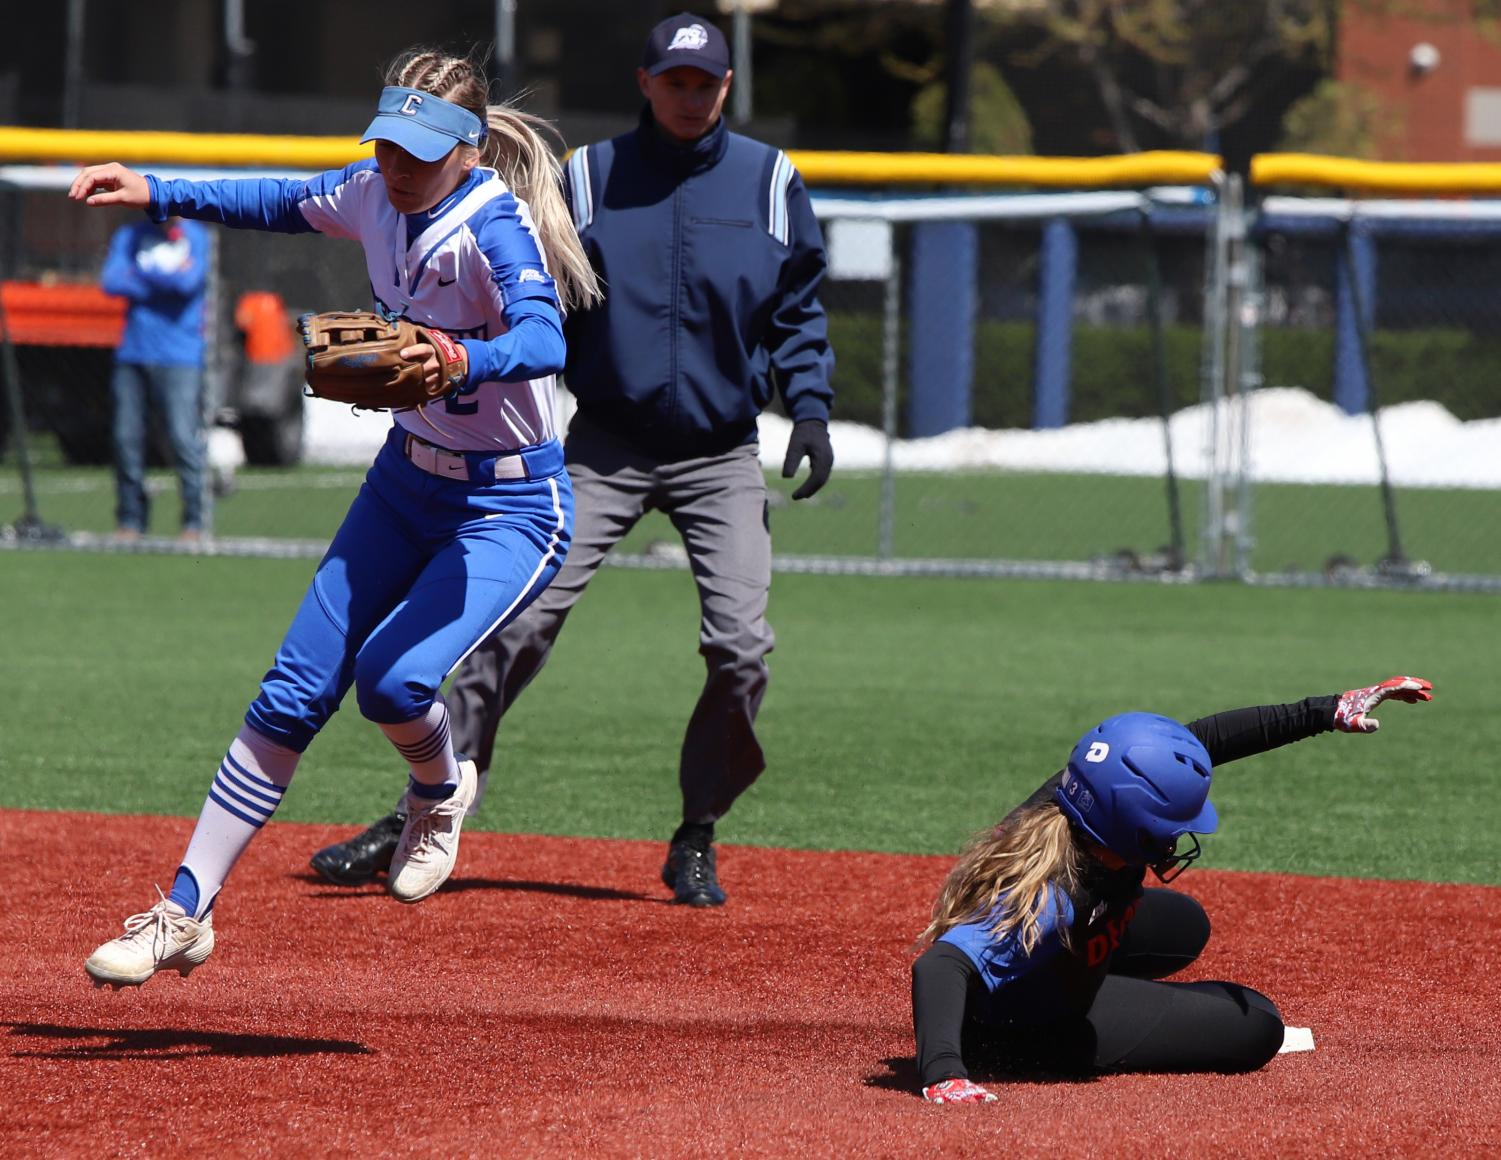 DePaul junior Madison Fisher slides into second base during DePaul's game against Creighton at Cacciatore Stadium on Sunday.